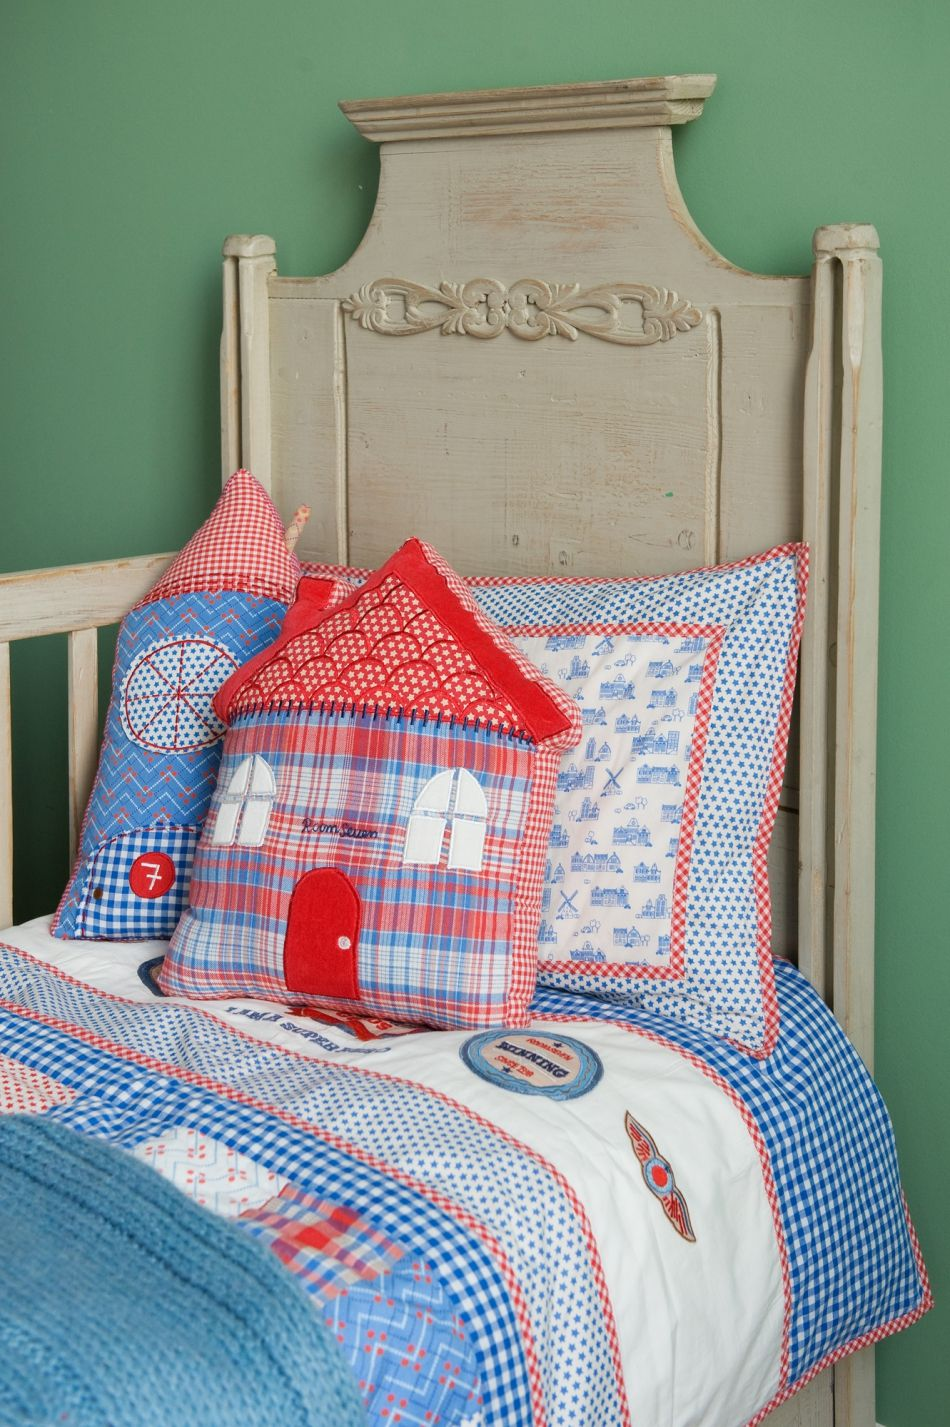 Room Seven Kussens.Room Seven Bedding From Holland With Love Patchwork Quilt